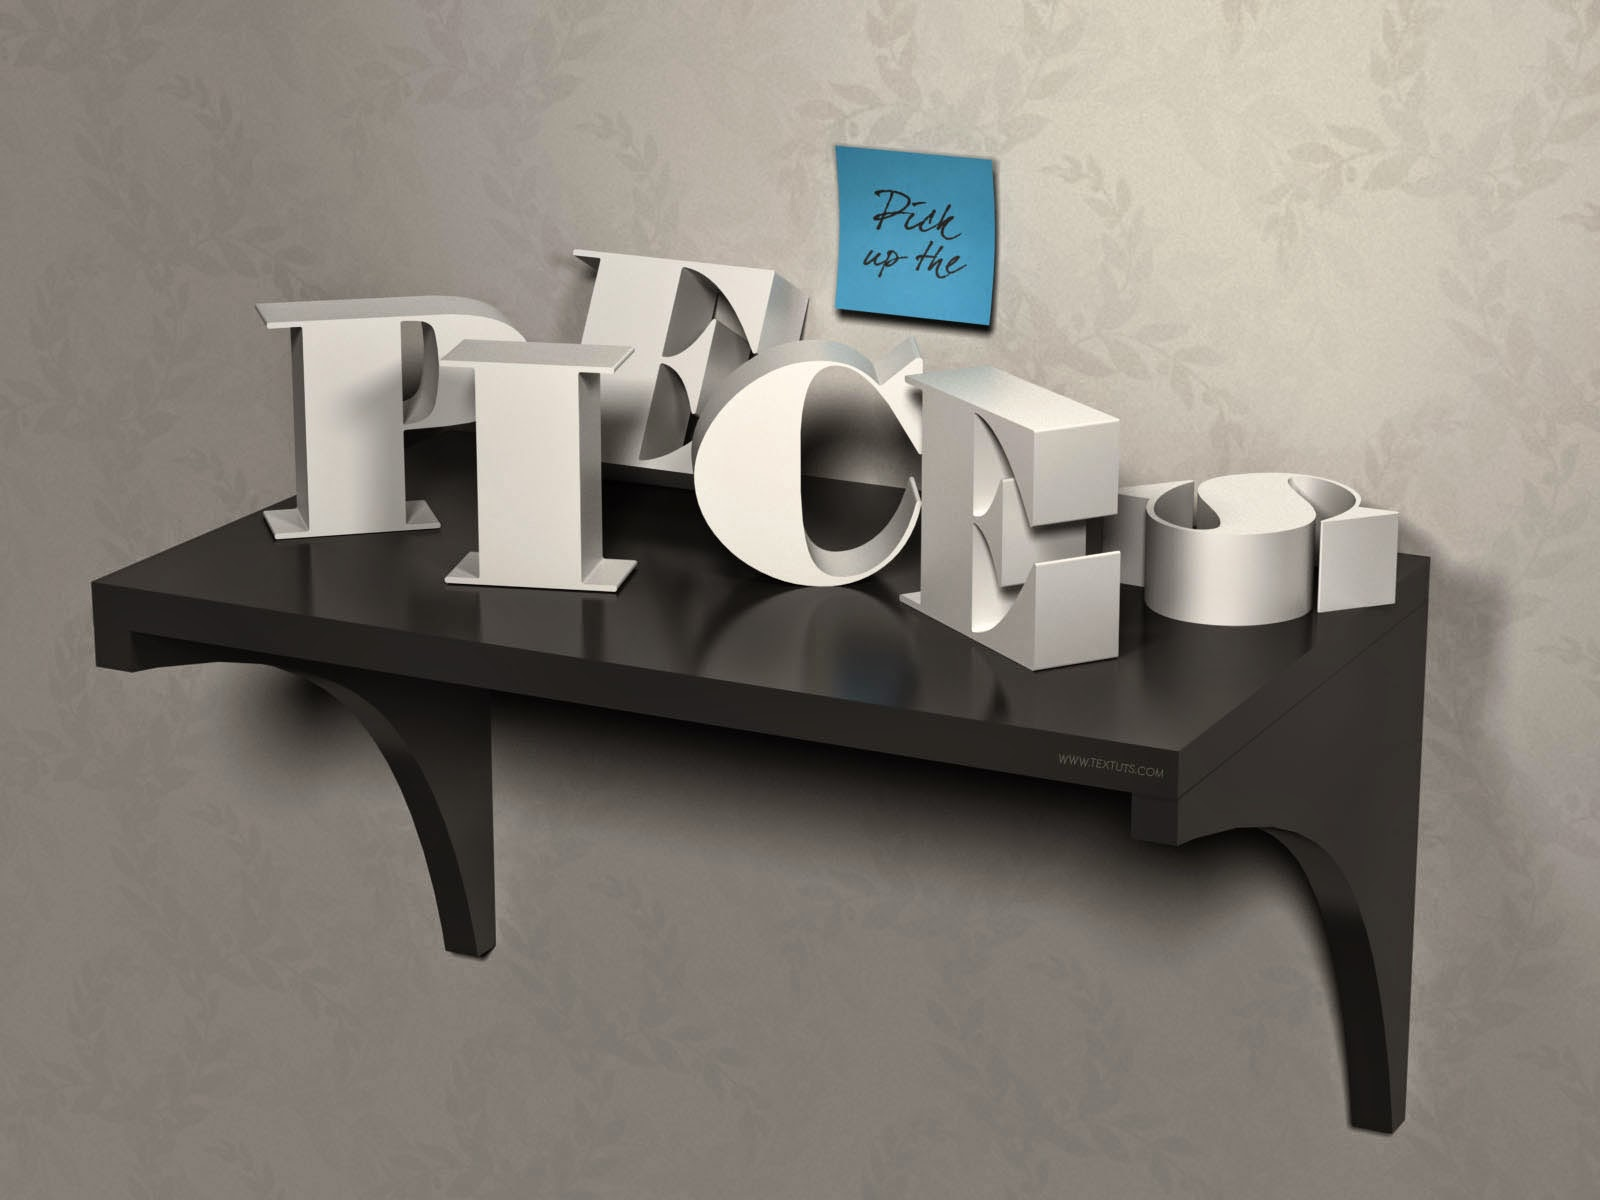 3D Letters on a Shelf using Photoshop CC